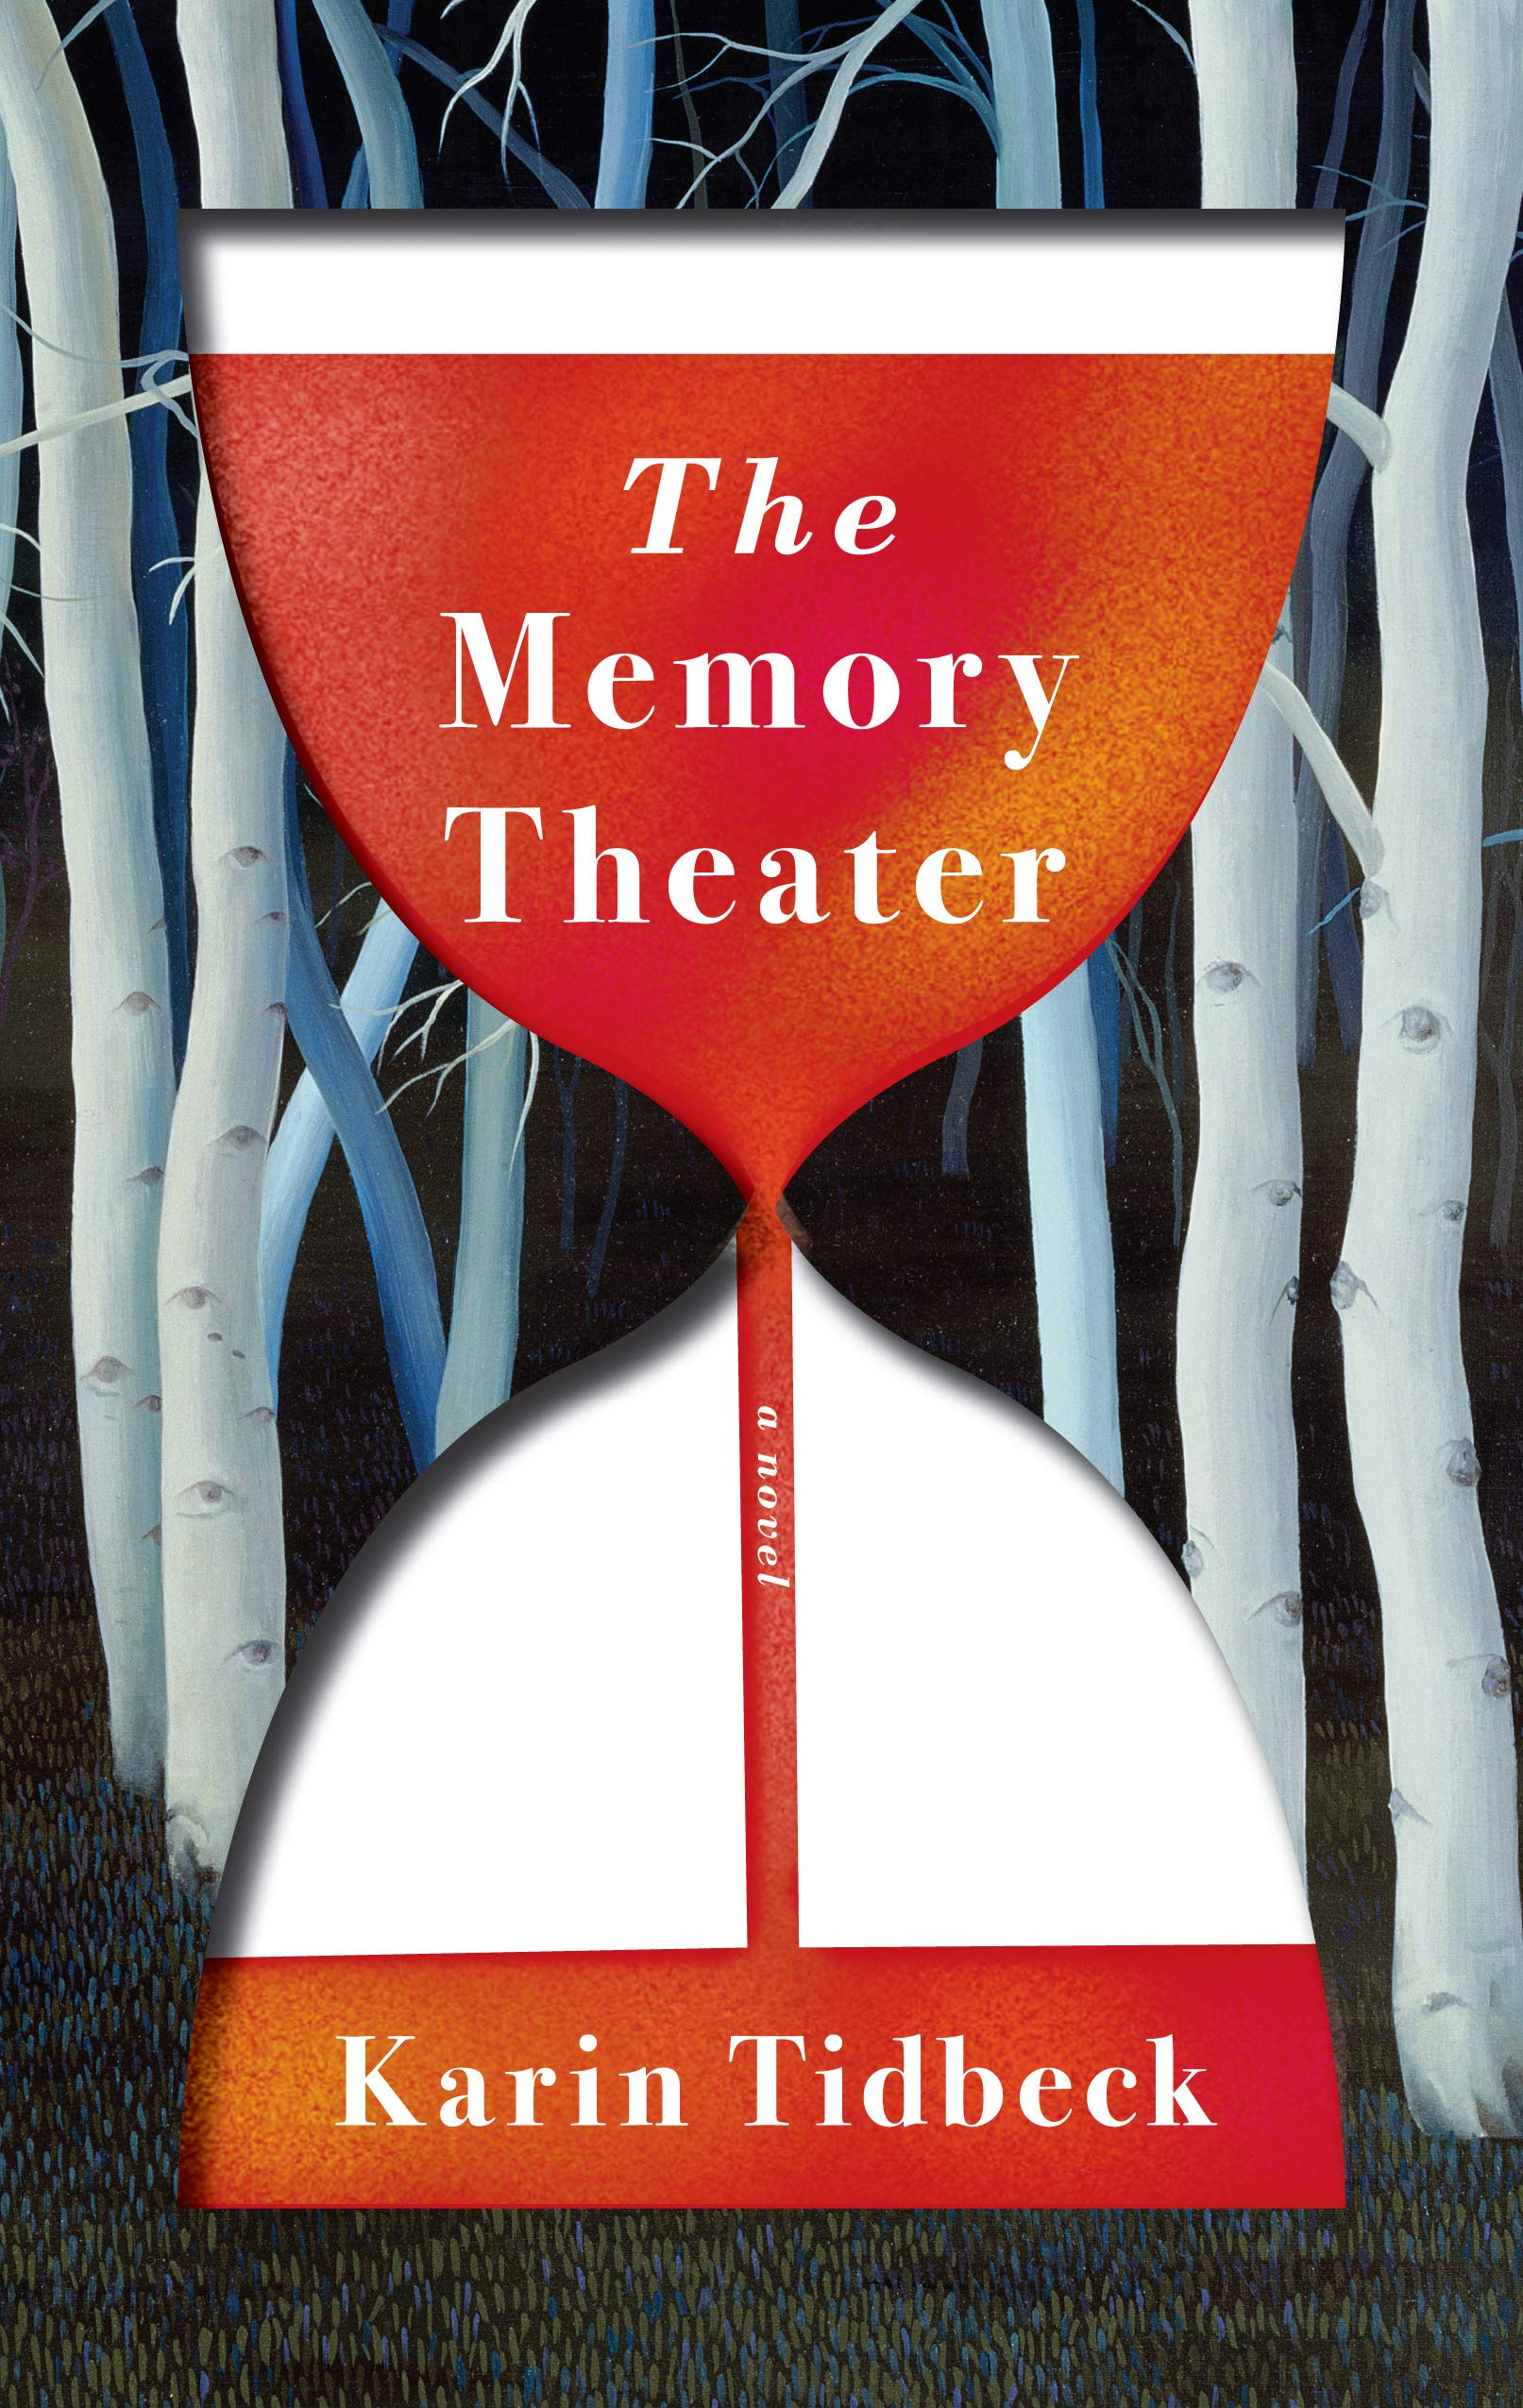 The Memory Theater by Karin Tidbeck